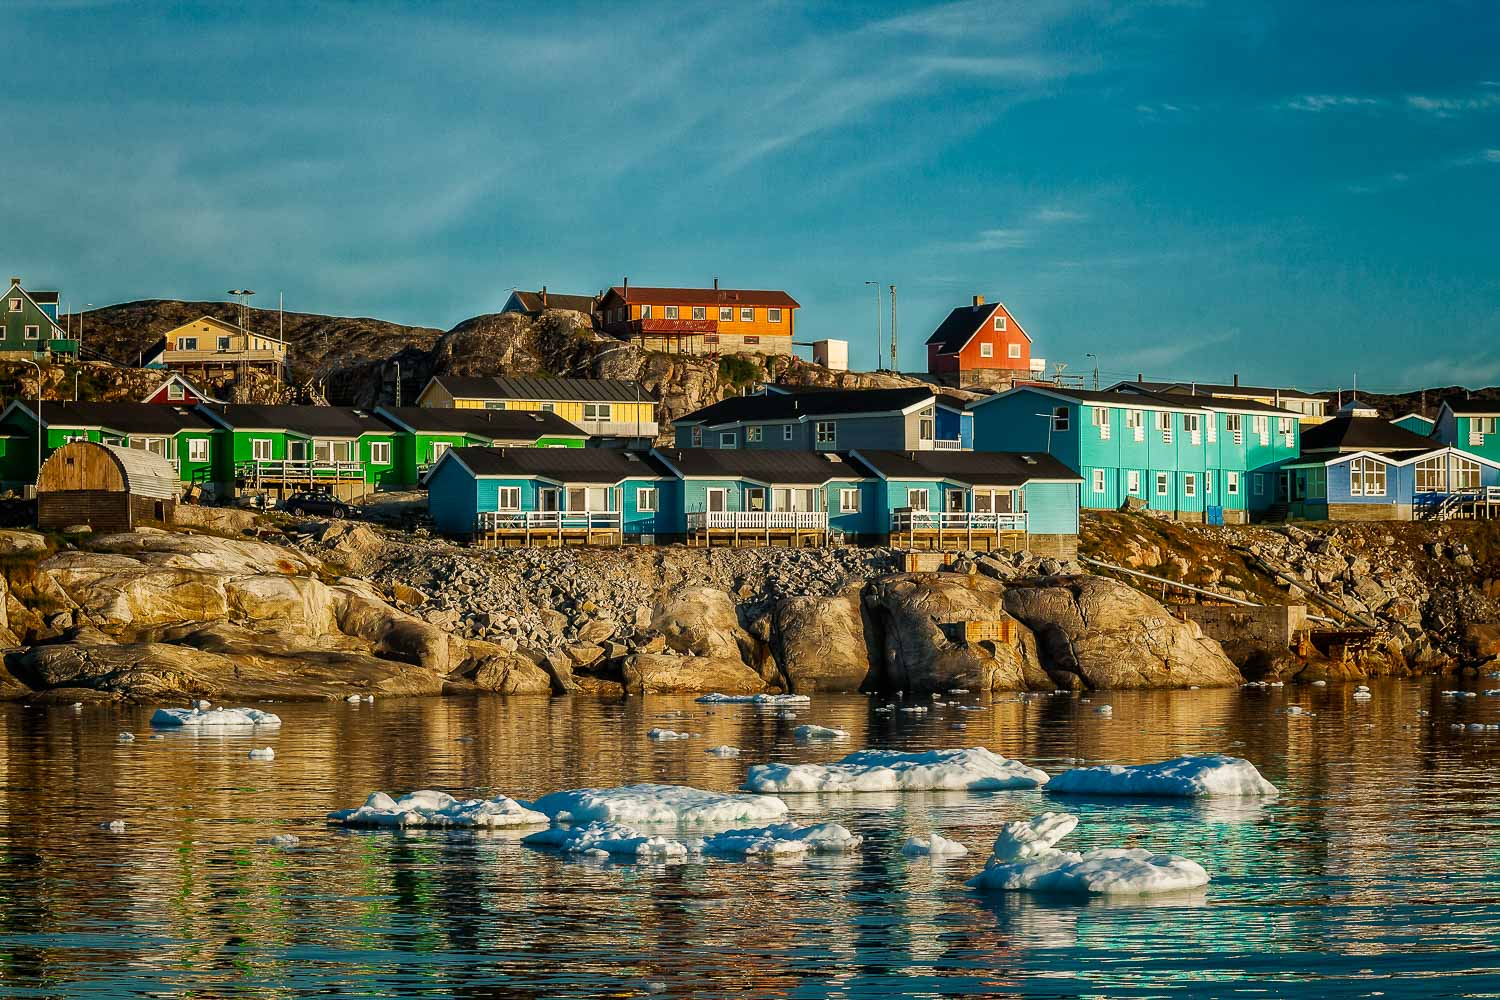 Living by the Sea, Ilulissat, Greenland